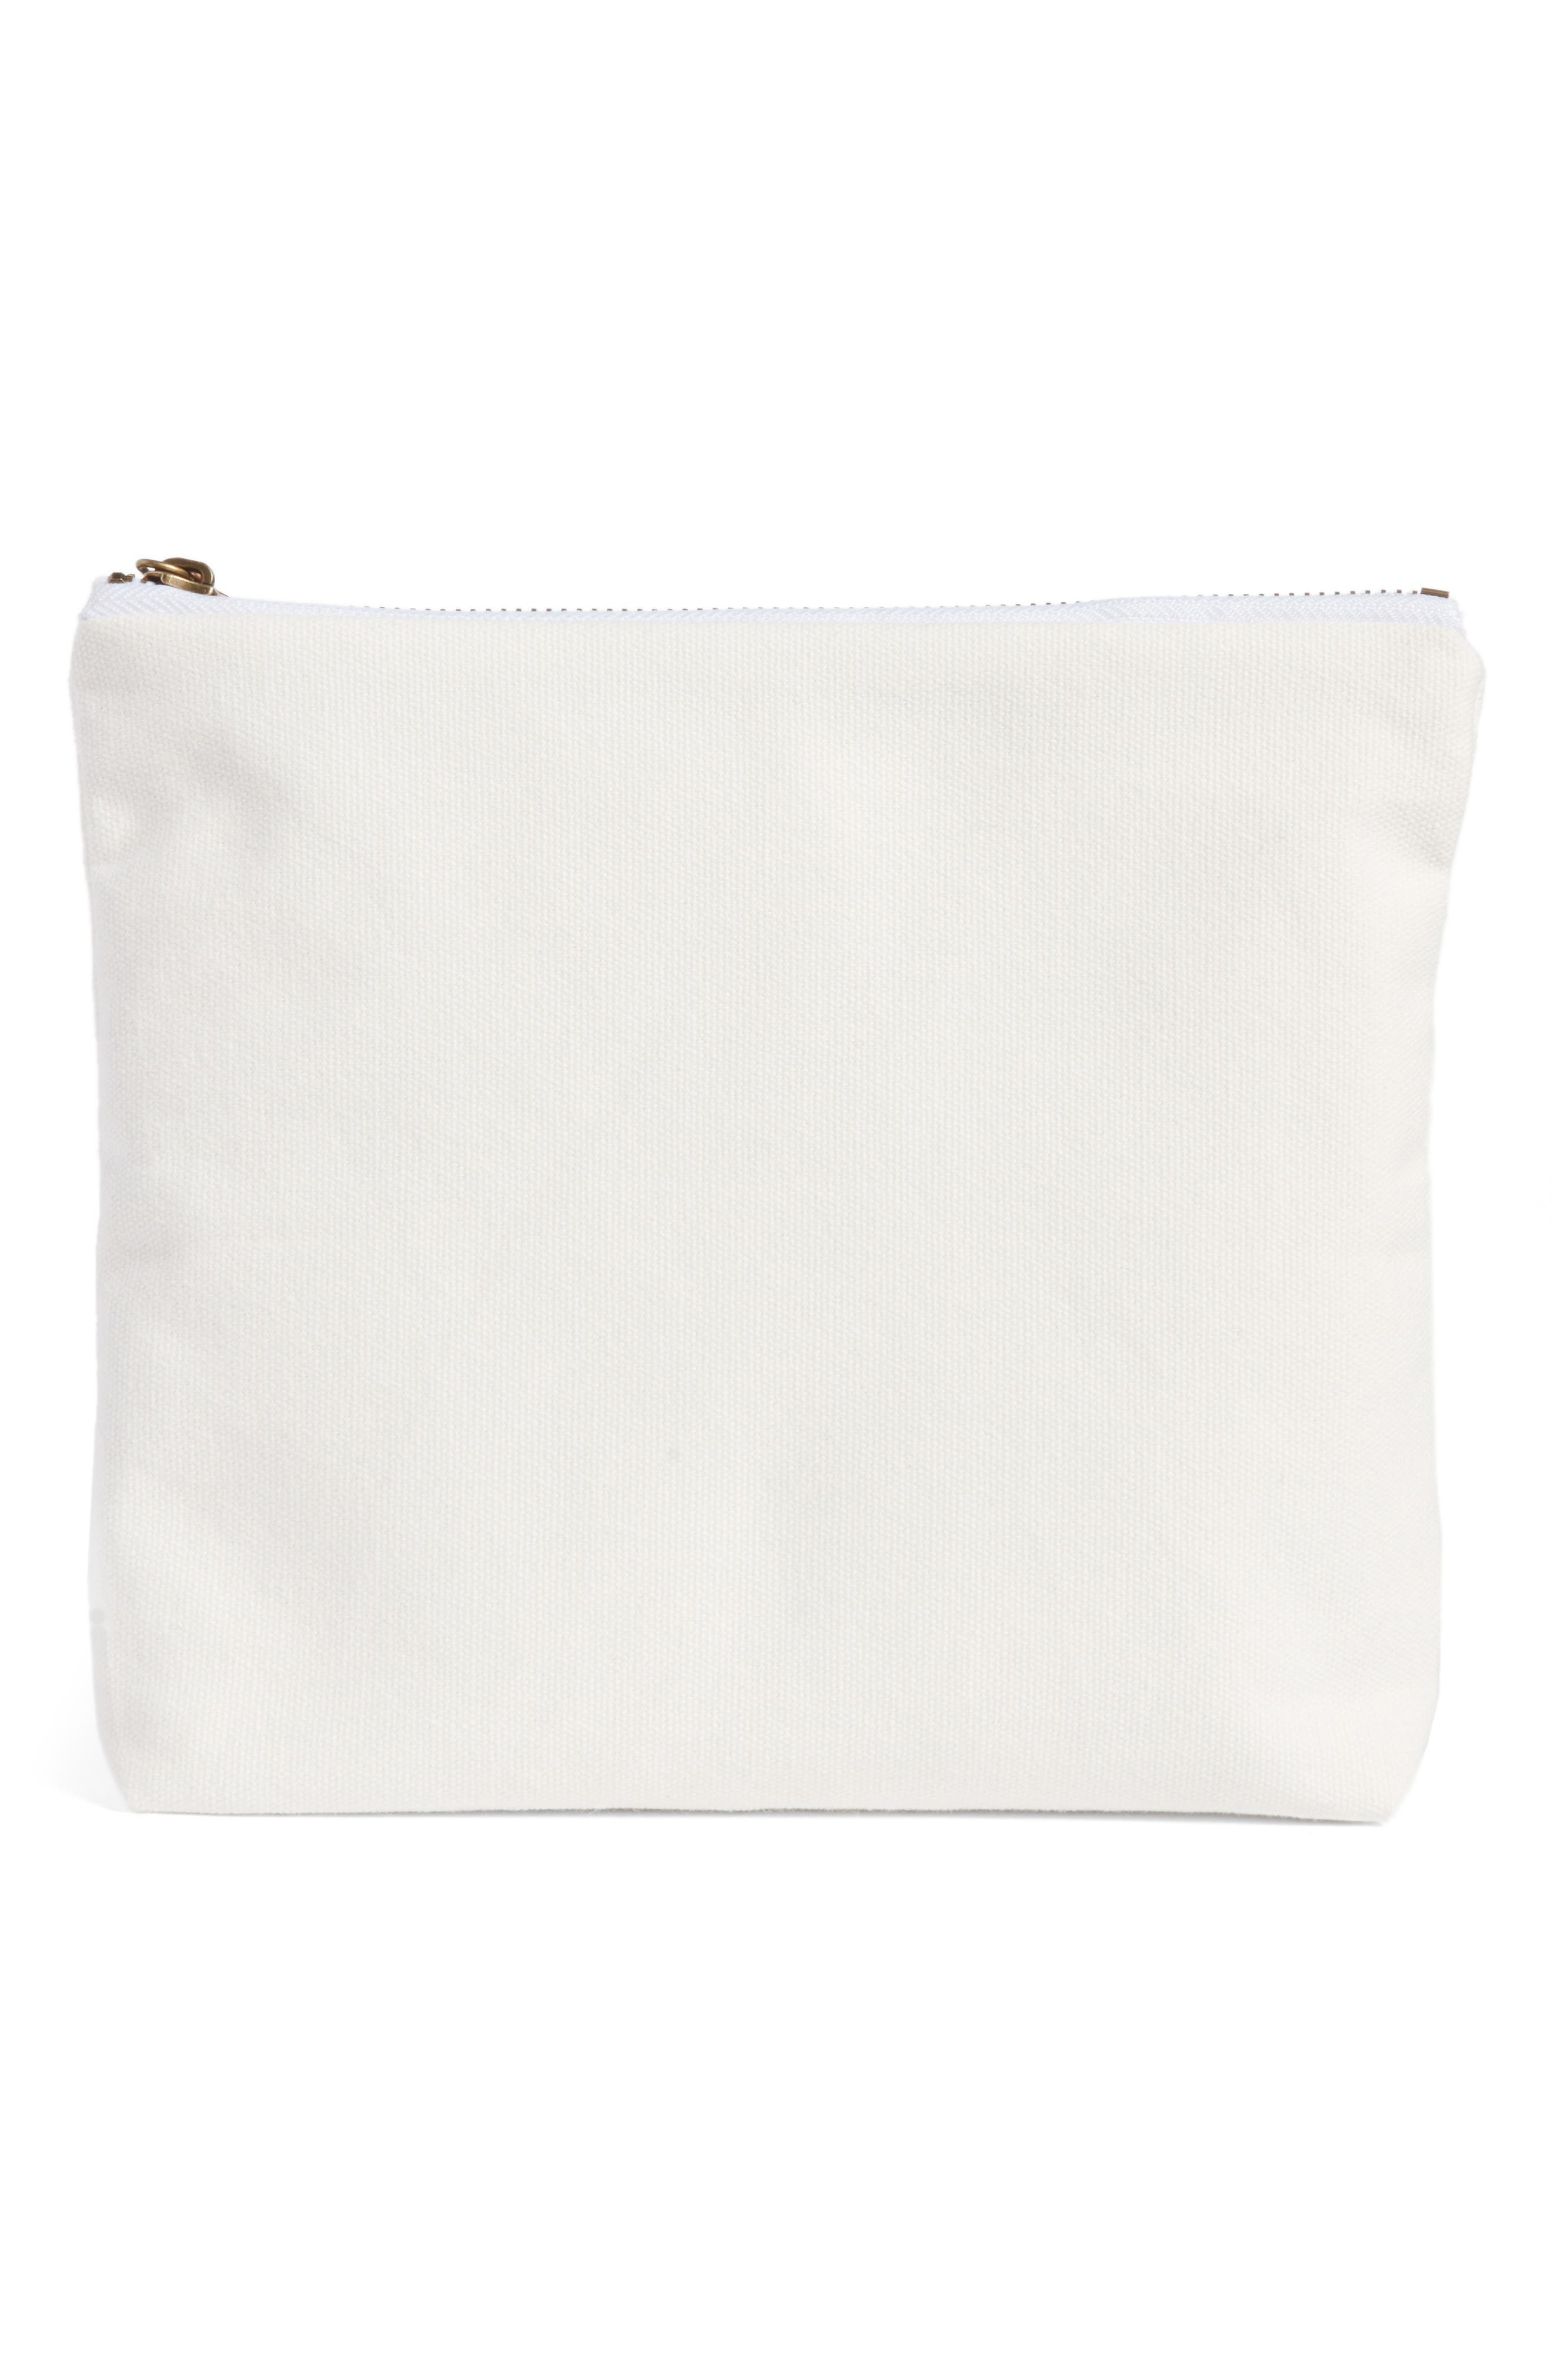 Old & Wise Before Young & Crazy Zip Top Accessory Bag,                             Alternate thumbnail 2, color,                             900